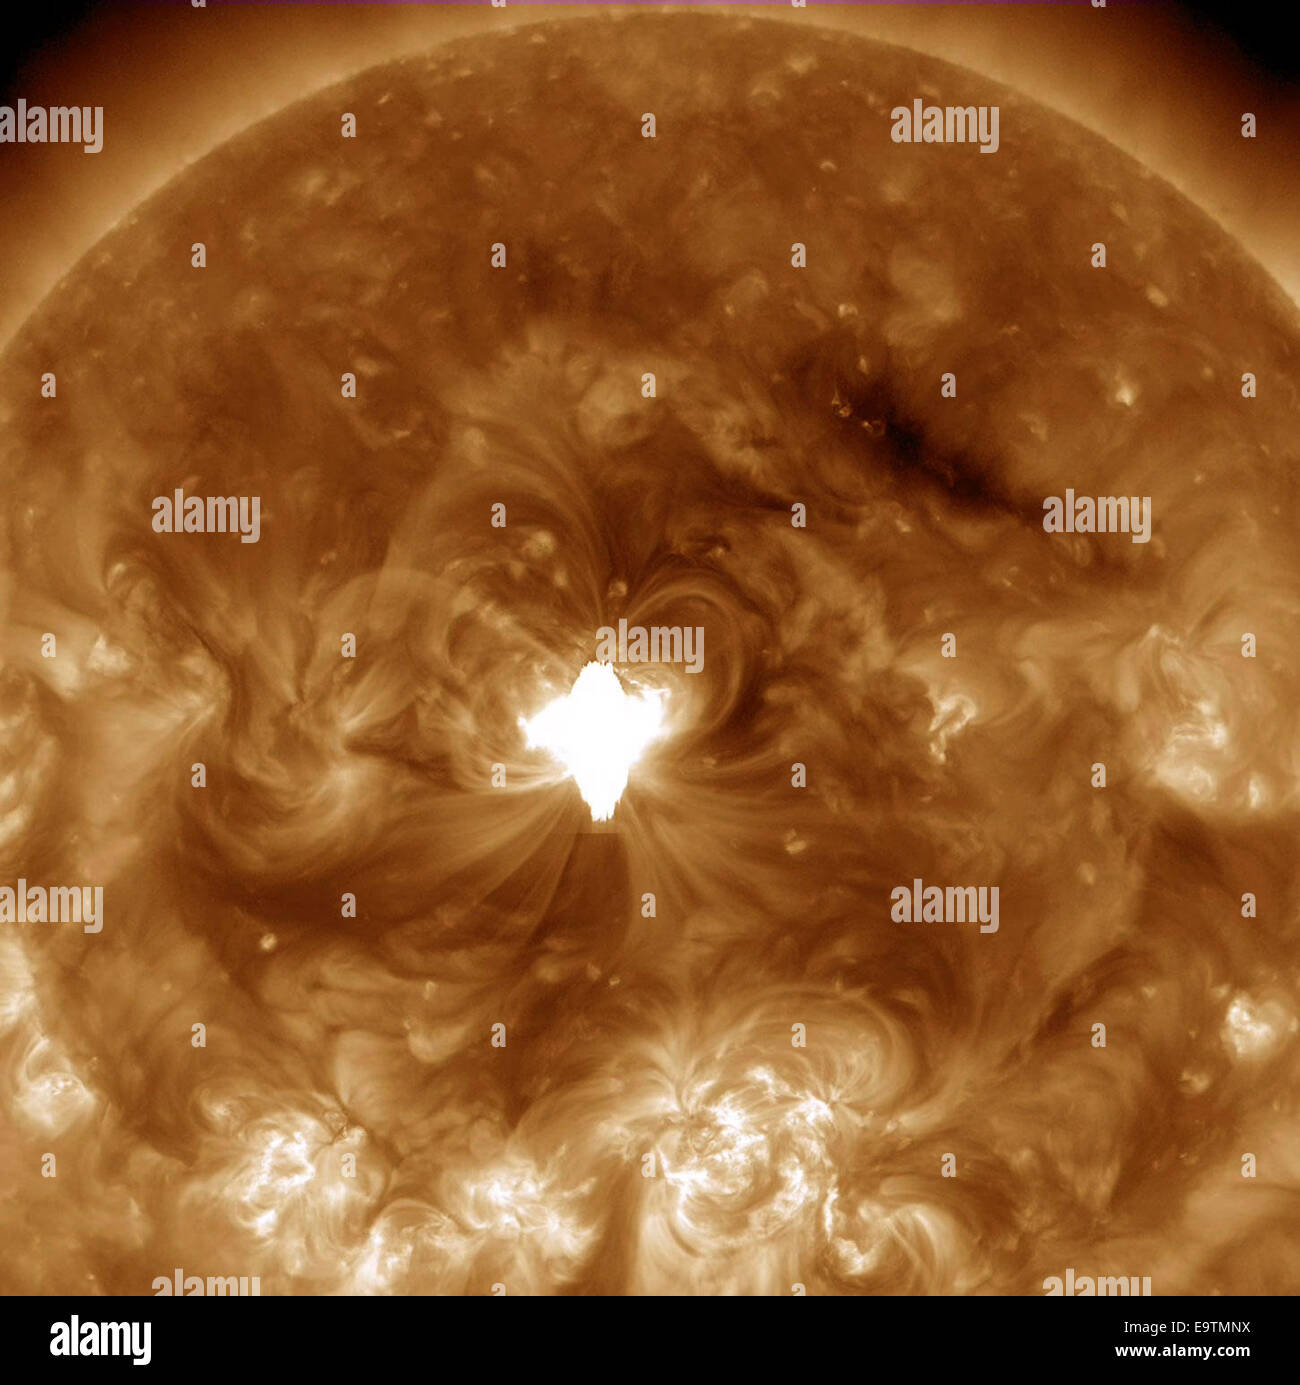 Earth-directed X-class flare - Stock Image